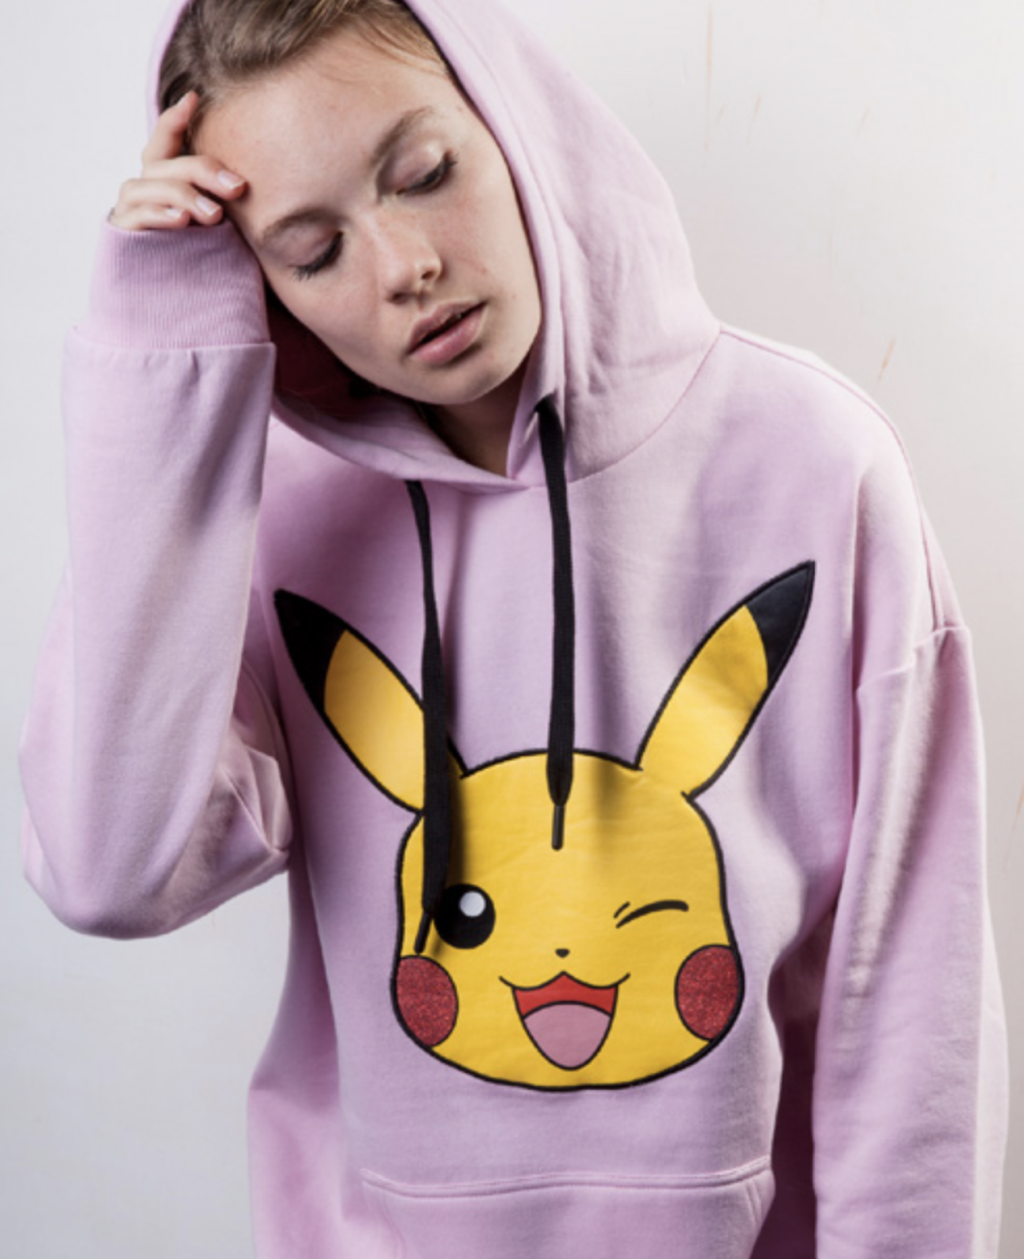 POKEMON - Women's Sweatshirt - Pikachu (S)_1